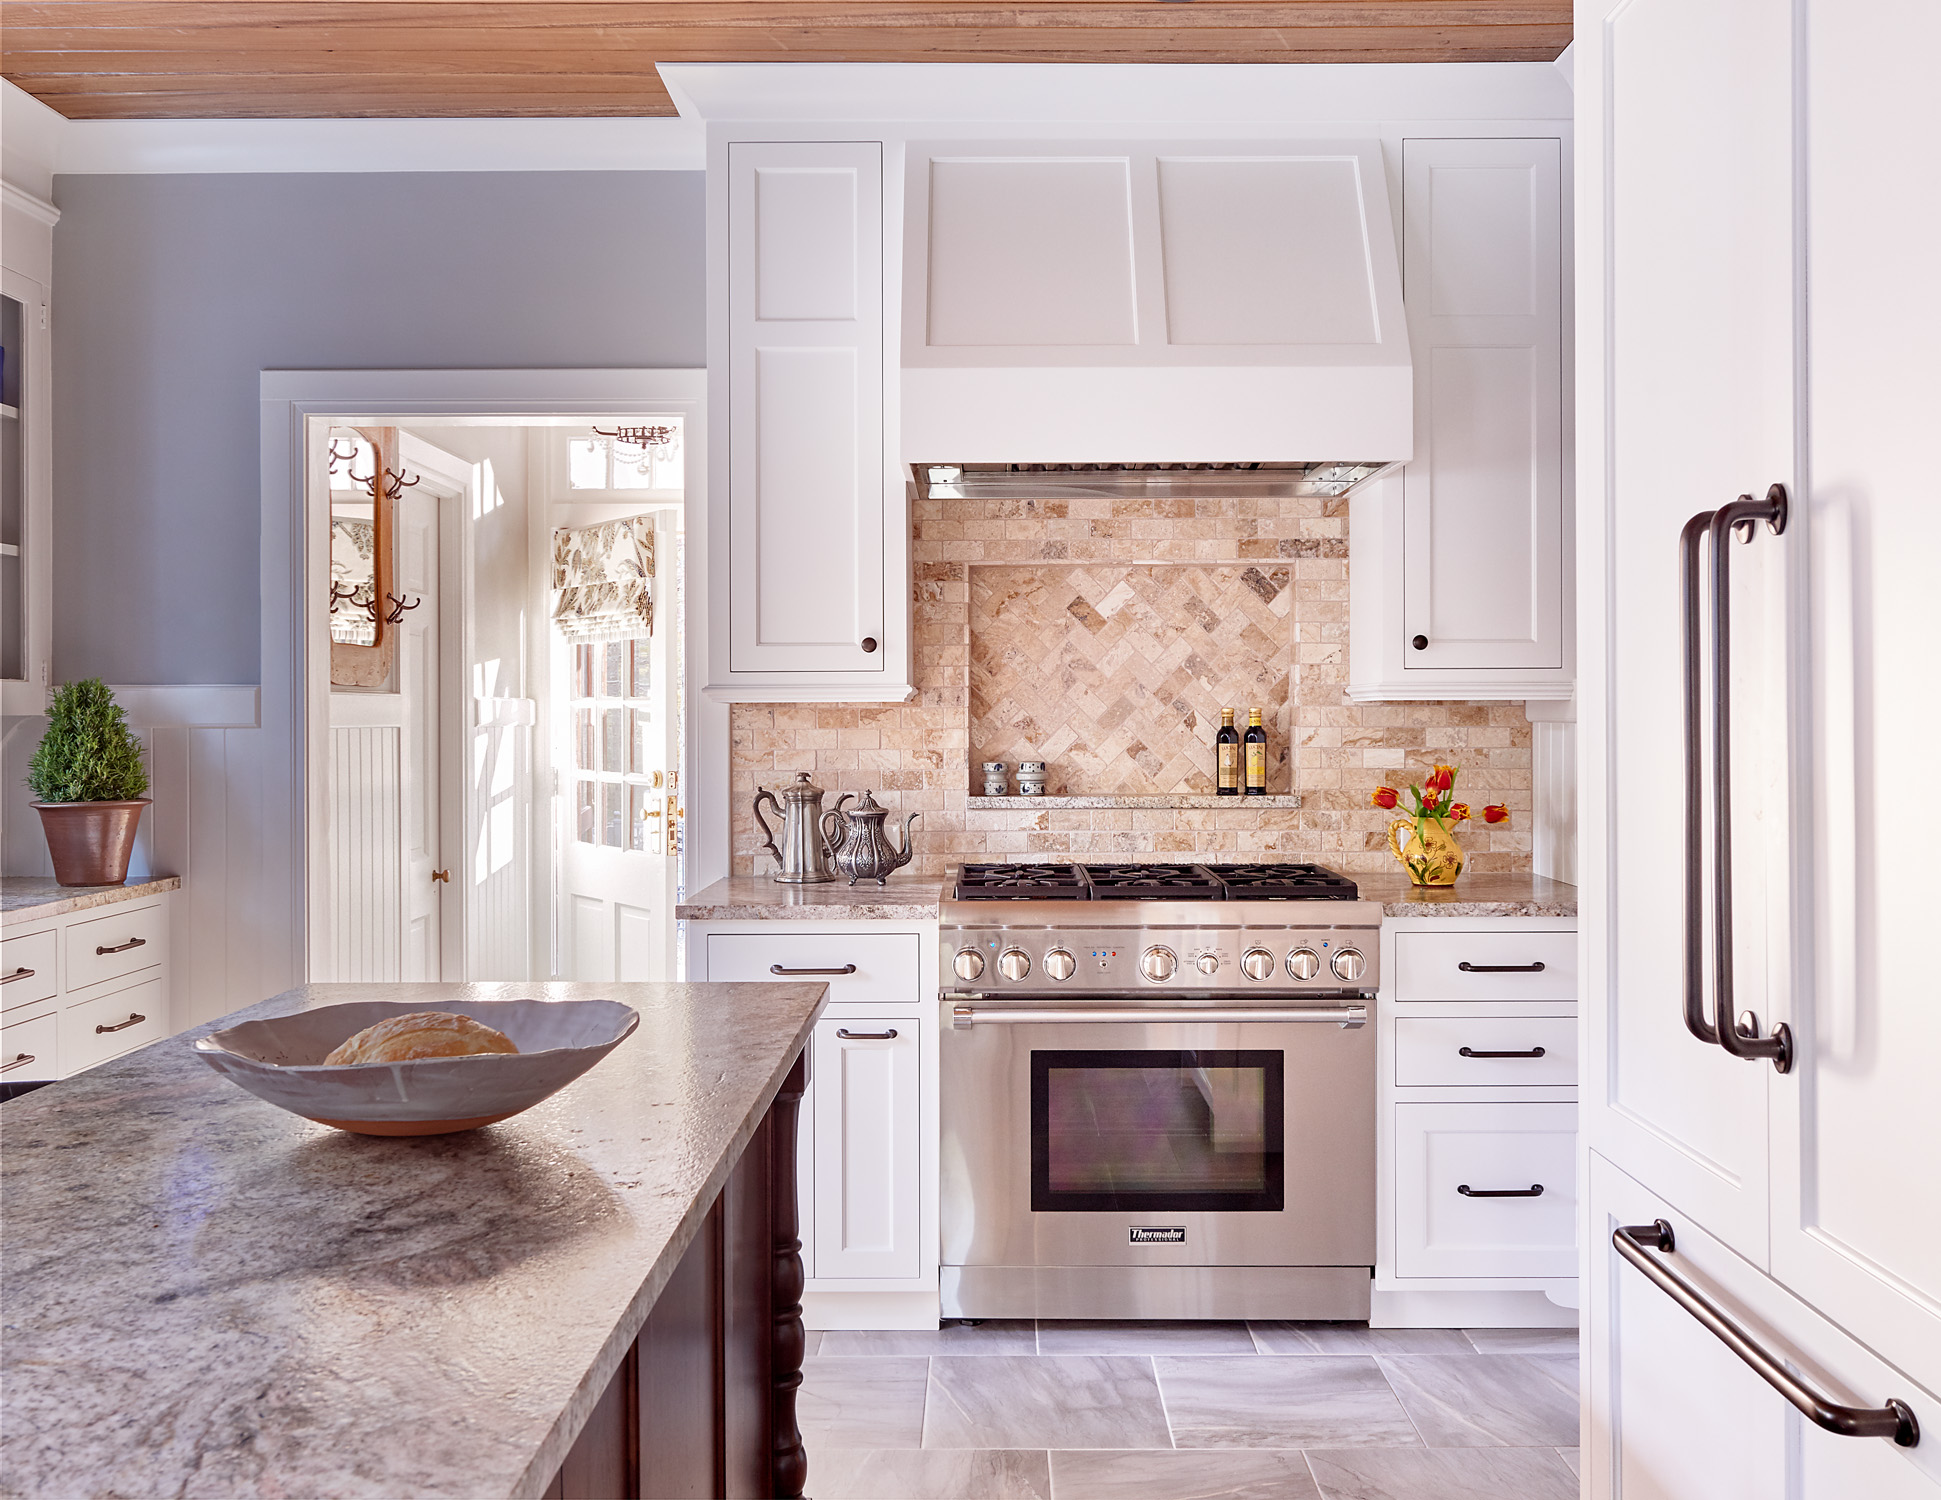 Historic cottage home kitchen remodel with Thermador appliances and tumbled stone backsplash with natural stone counters